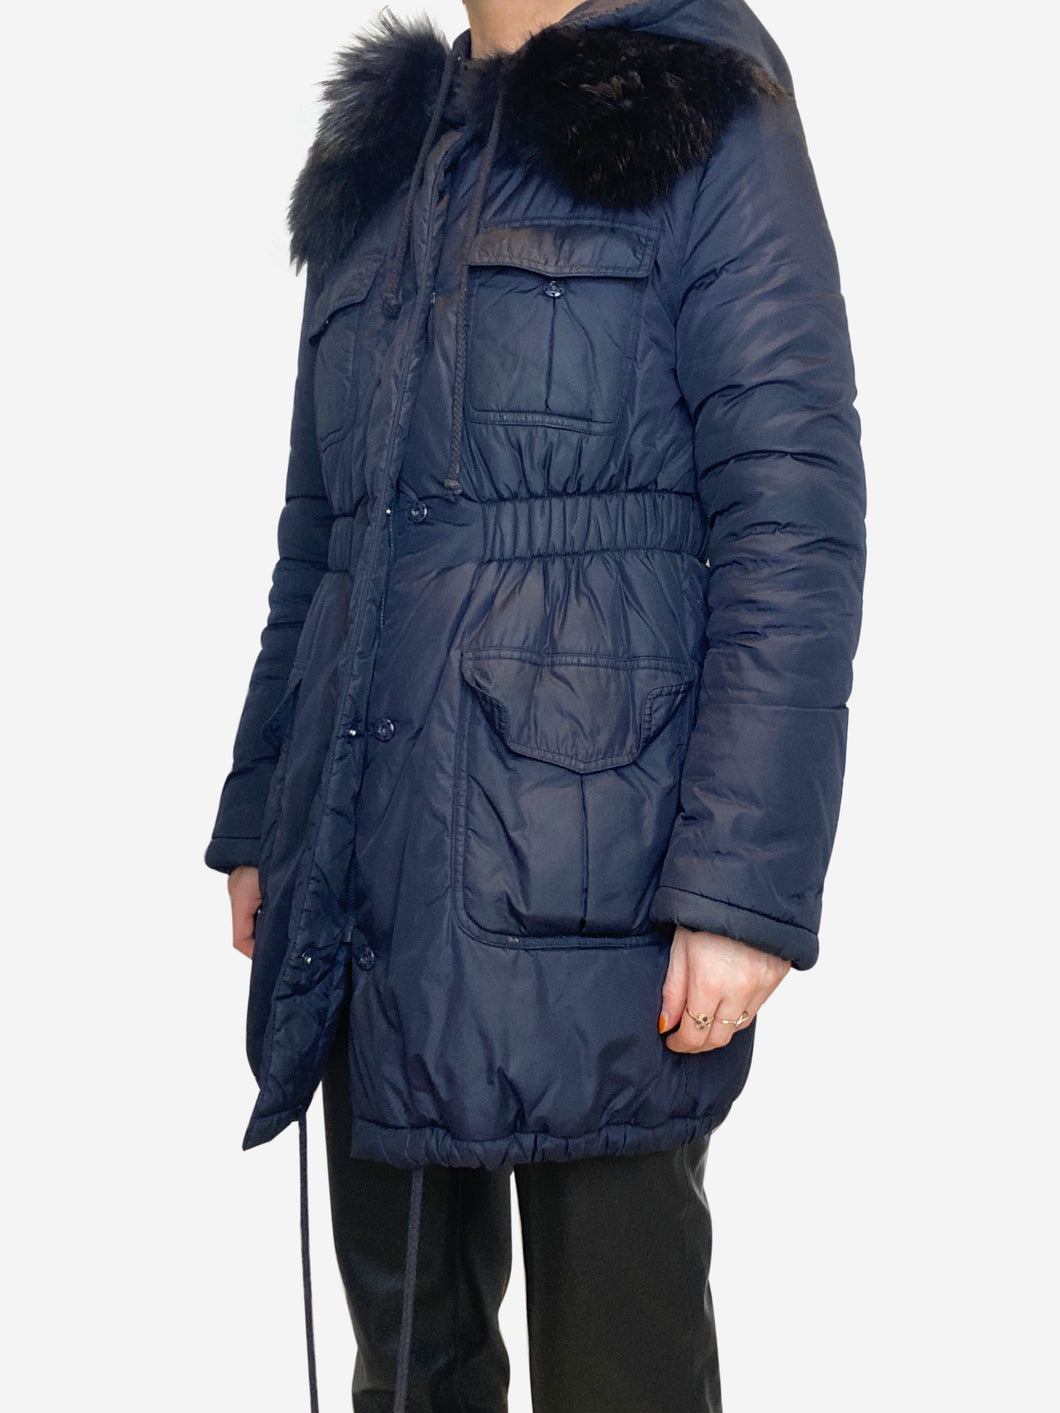 Navy hooded coat with fur lined collar - size UK 10